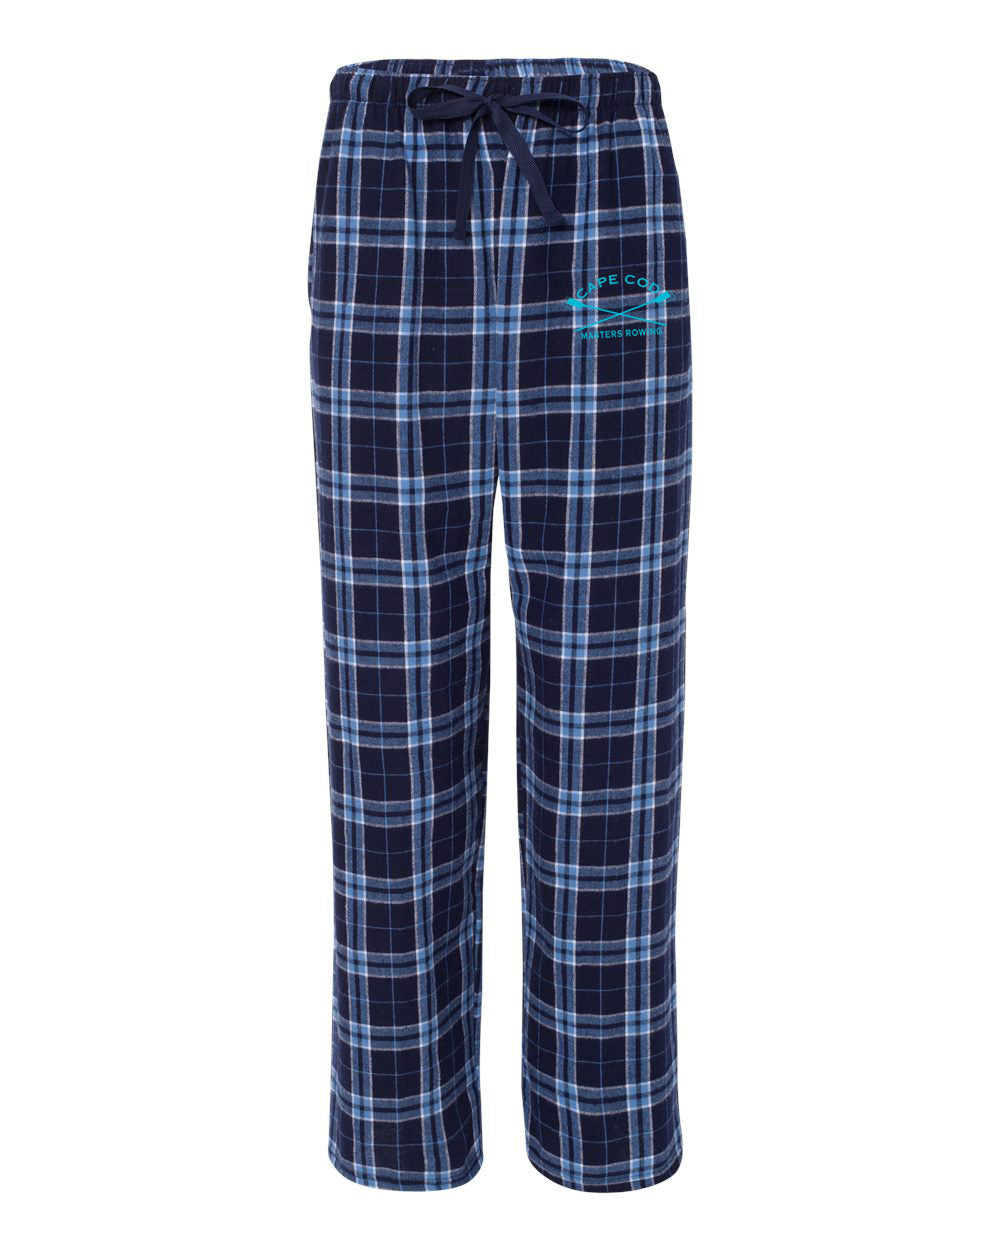 Cape Cod Masters Rowing Flannel Pants